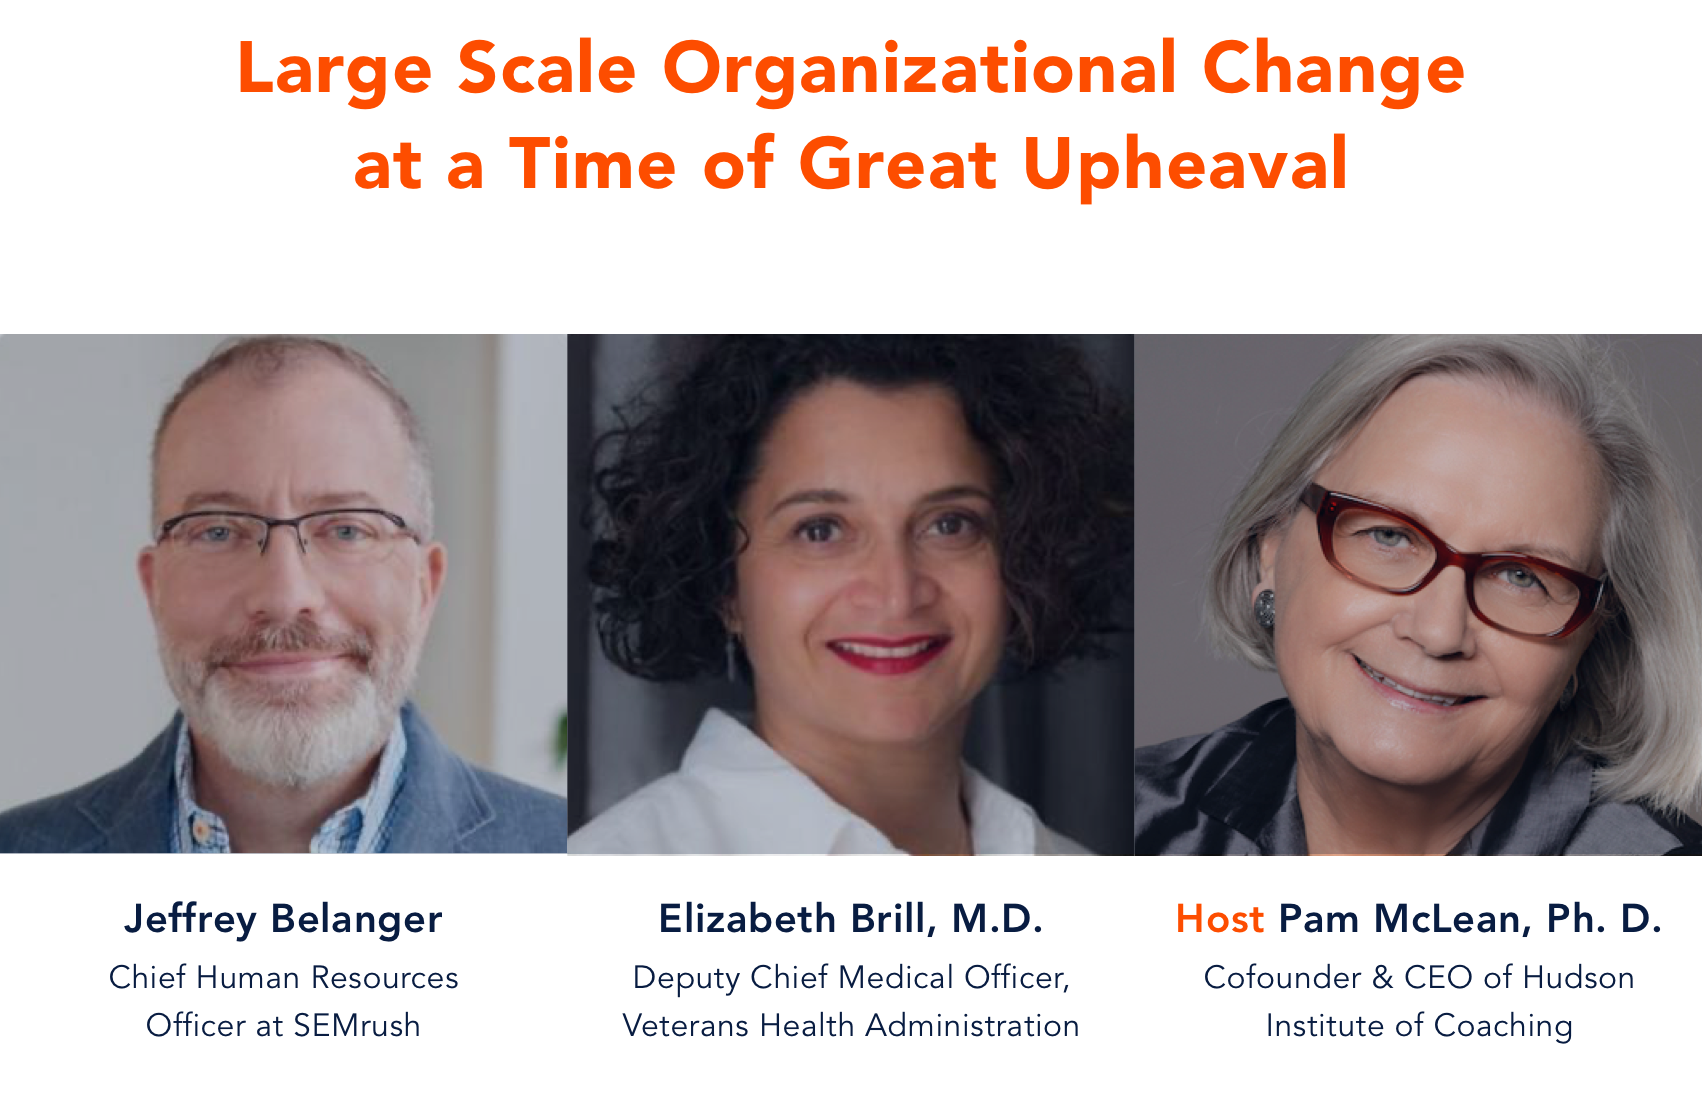 Preview Image for Hudson Coaching Conversations: Large Scale Organization Change at a Time of Great Upheaval with photos of panelists, Jeffrey Belanger, Elizabeth Brill M.D., and Pam McLean Ph.D.